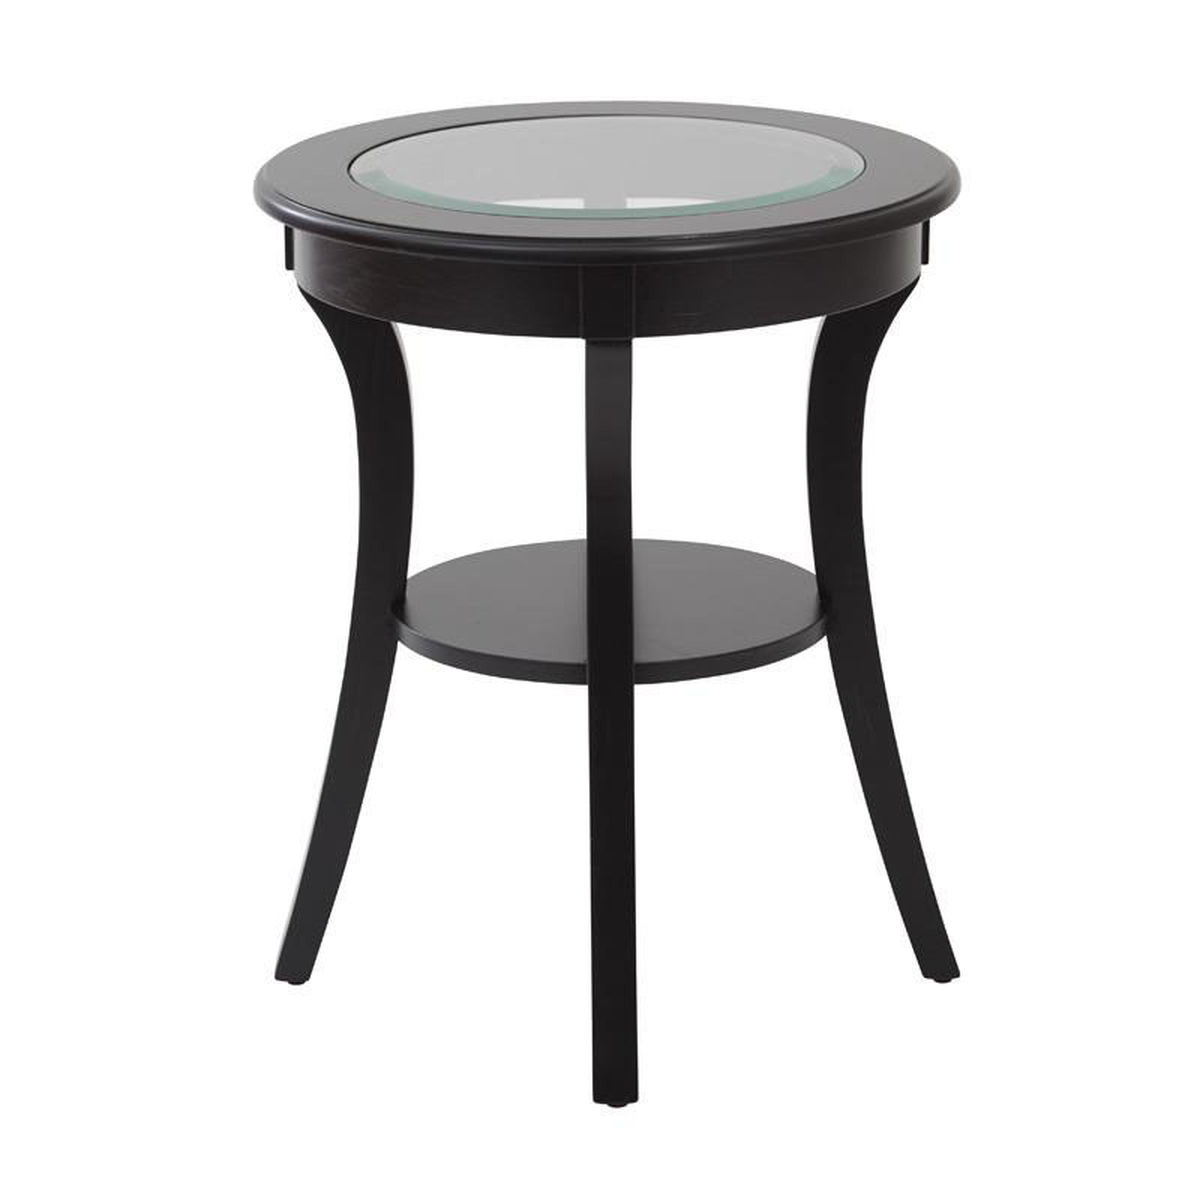 harper black glass accent table bizchair office star products round our osp designs top with wood finish and shelf outdoor patio seating coffee nested stools room essentials cups